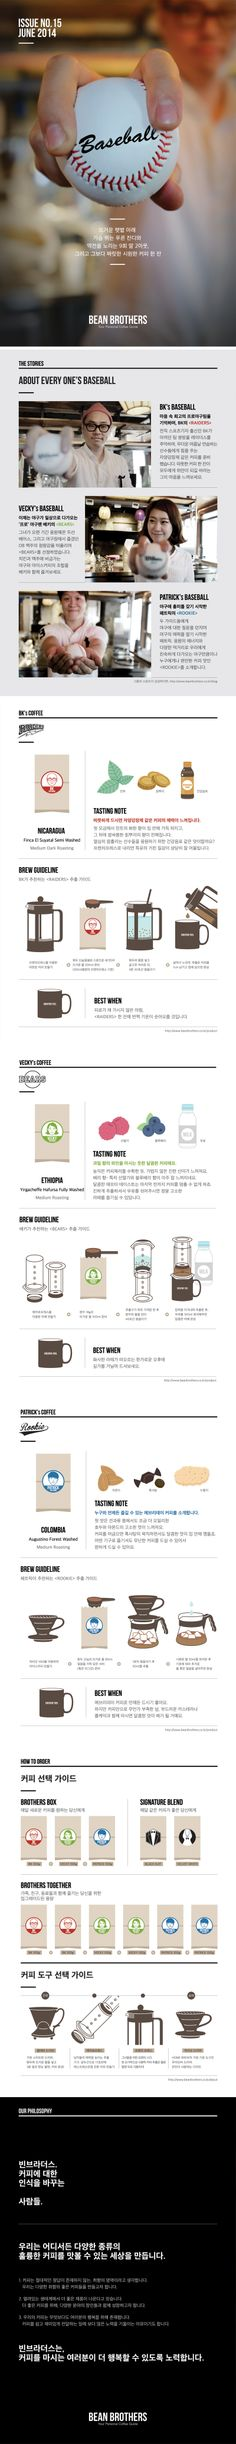 BEAN BROTHERS JUNE BOX / 빈브라더스 6월의 커피박스 / Coffee Subscription / Editorial Design / www.beanbrothers.co.kr